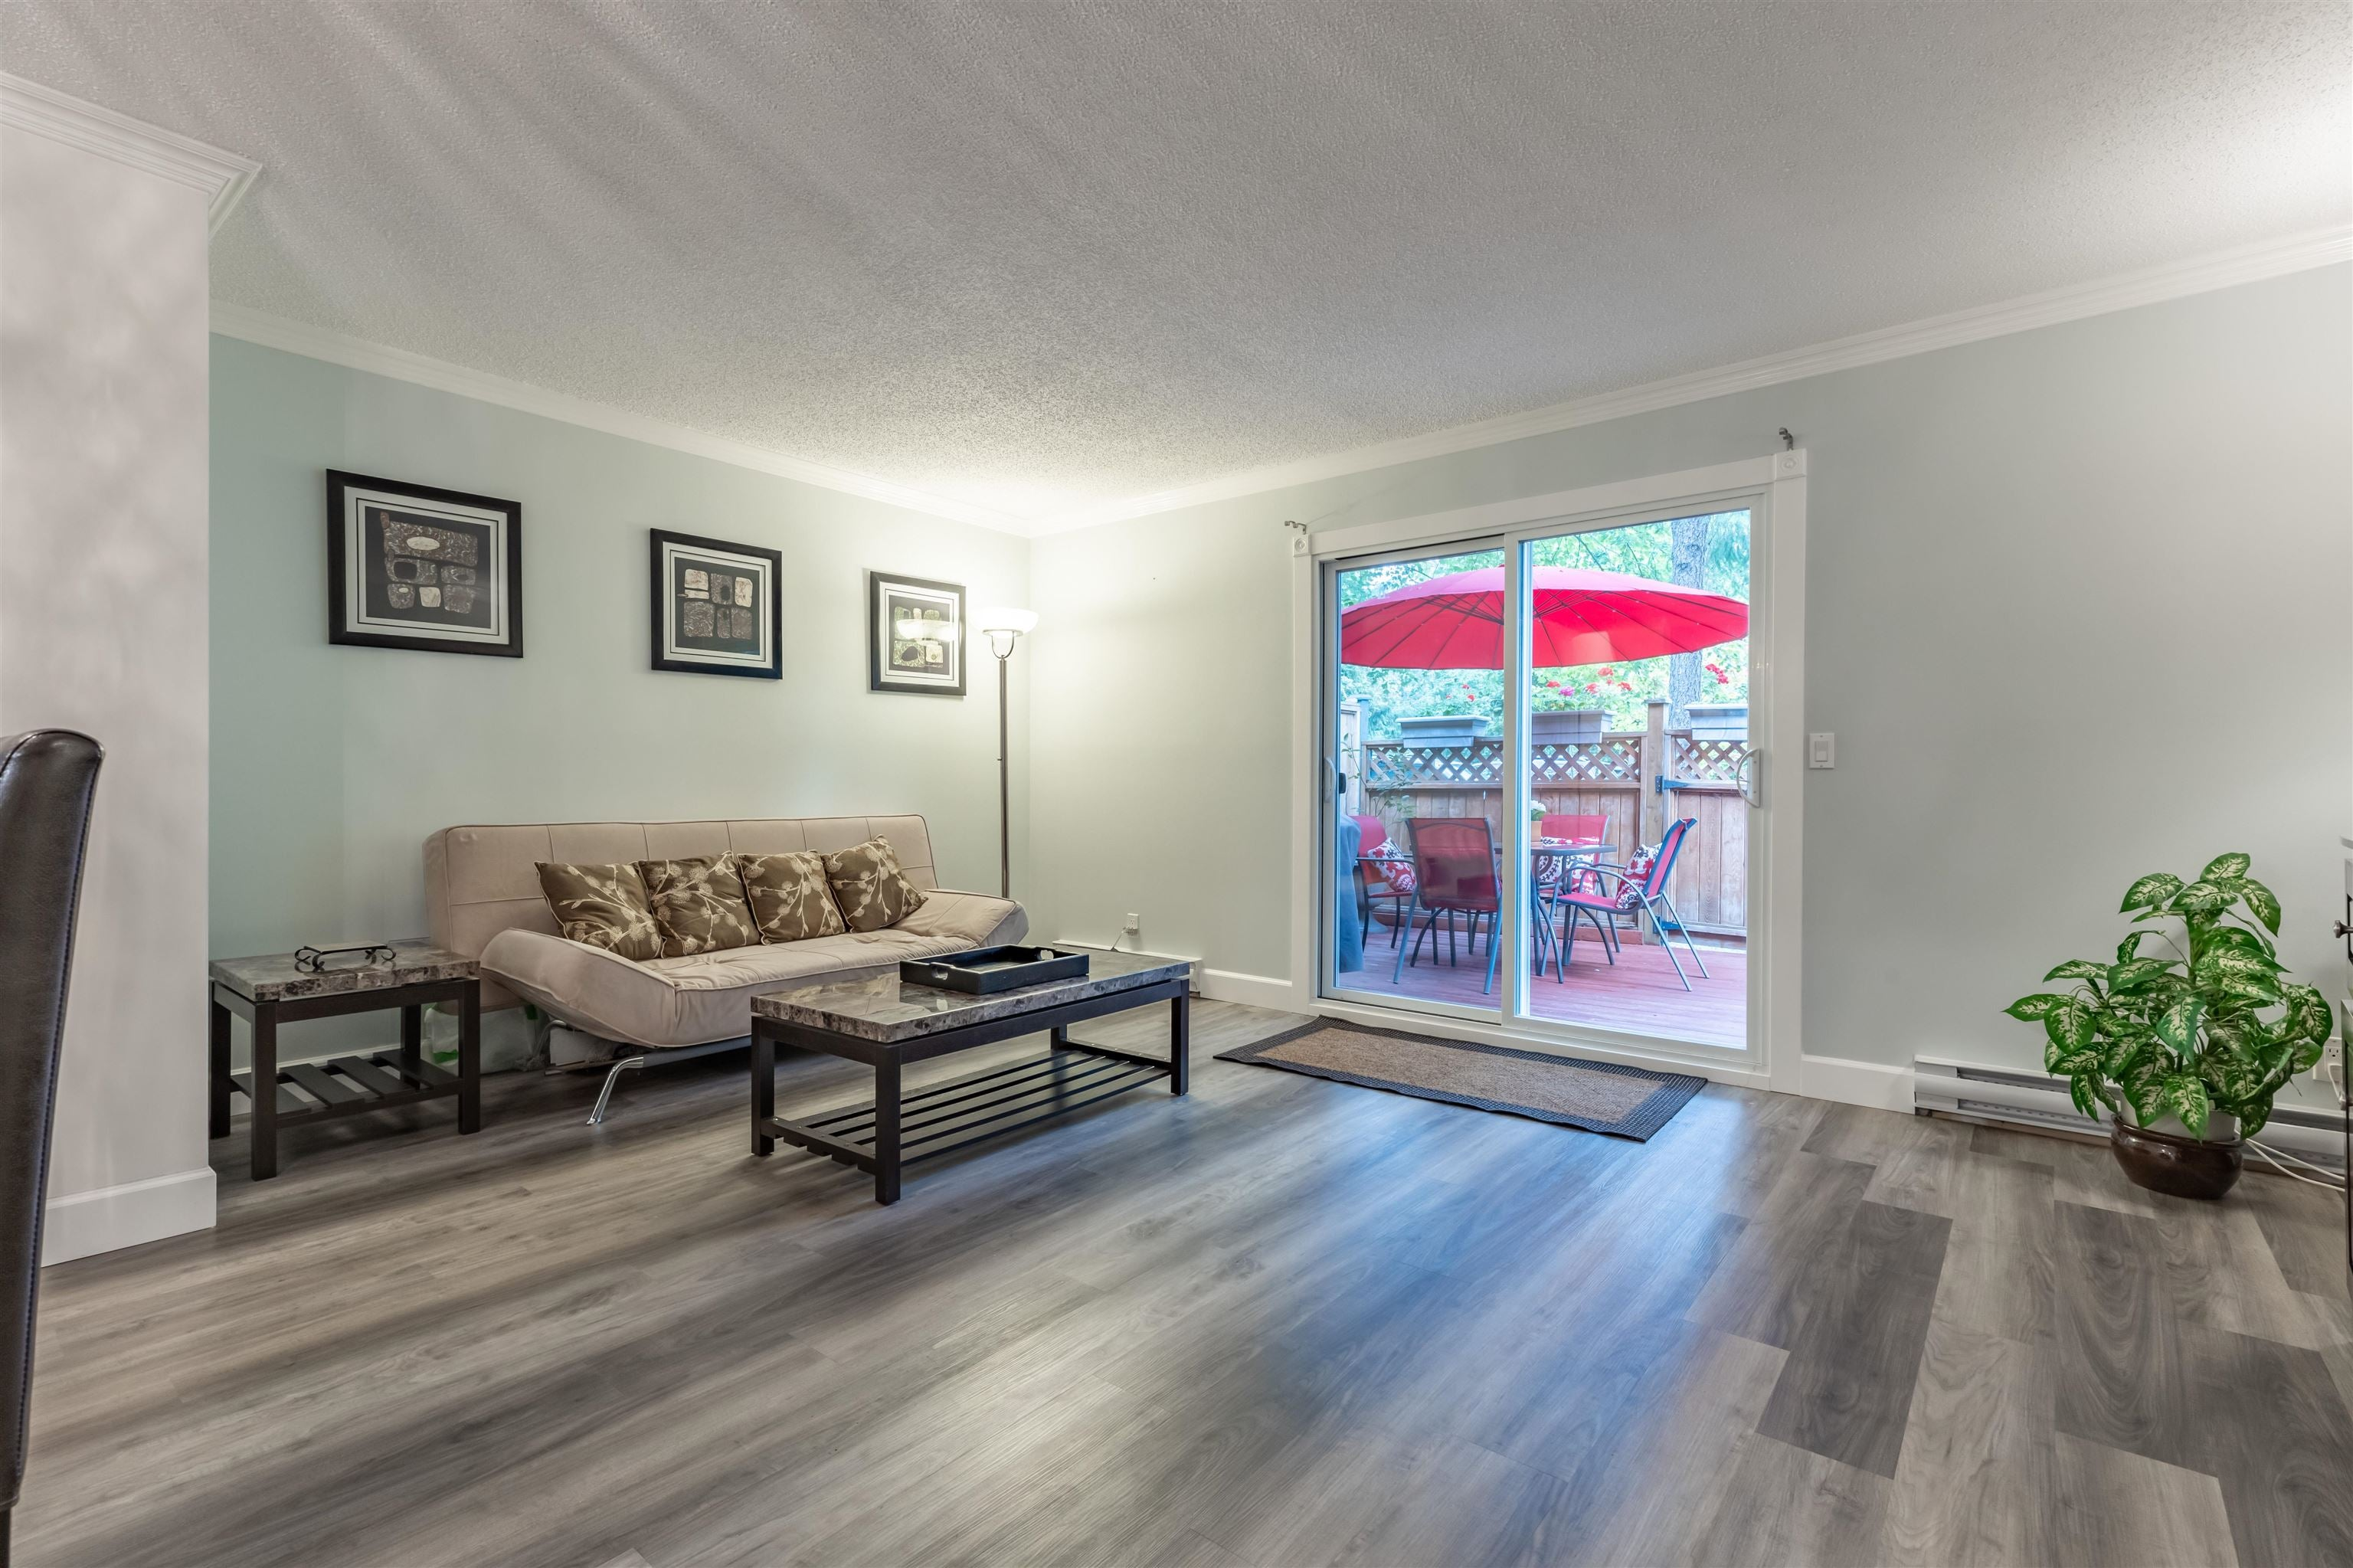 107 13726 67 AVENUE - East Newton Townhouse for sale, 3 Bedrooms (R2616694) - #6